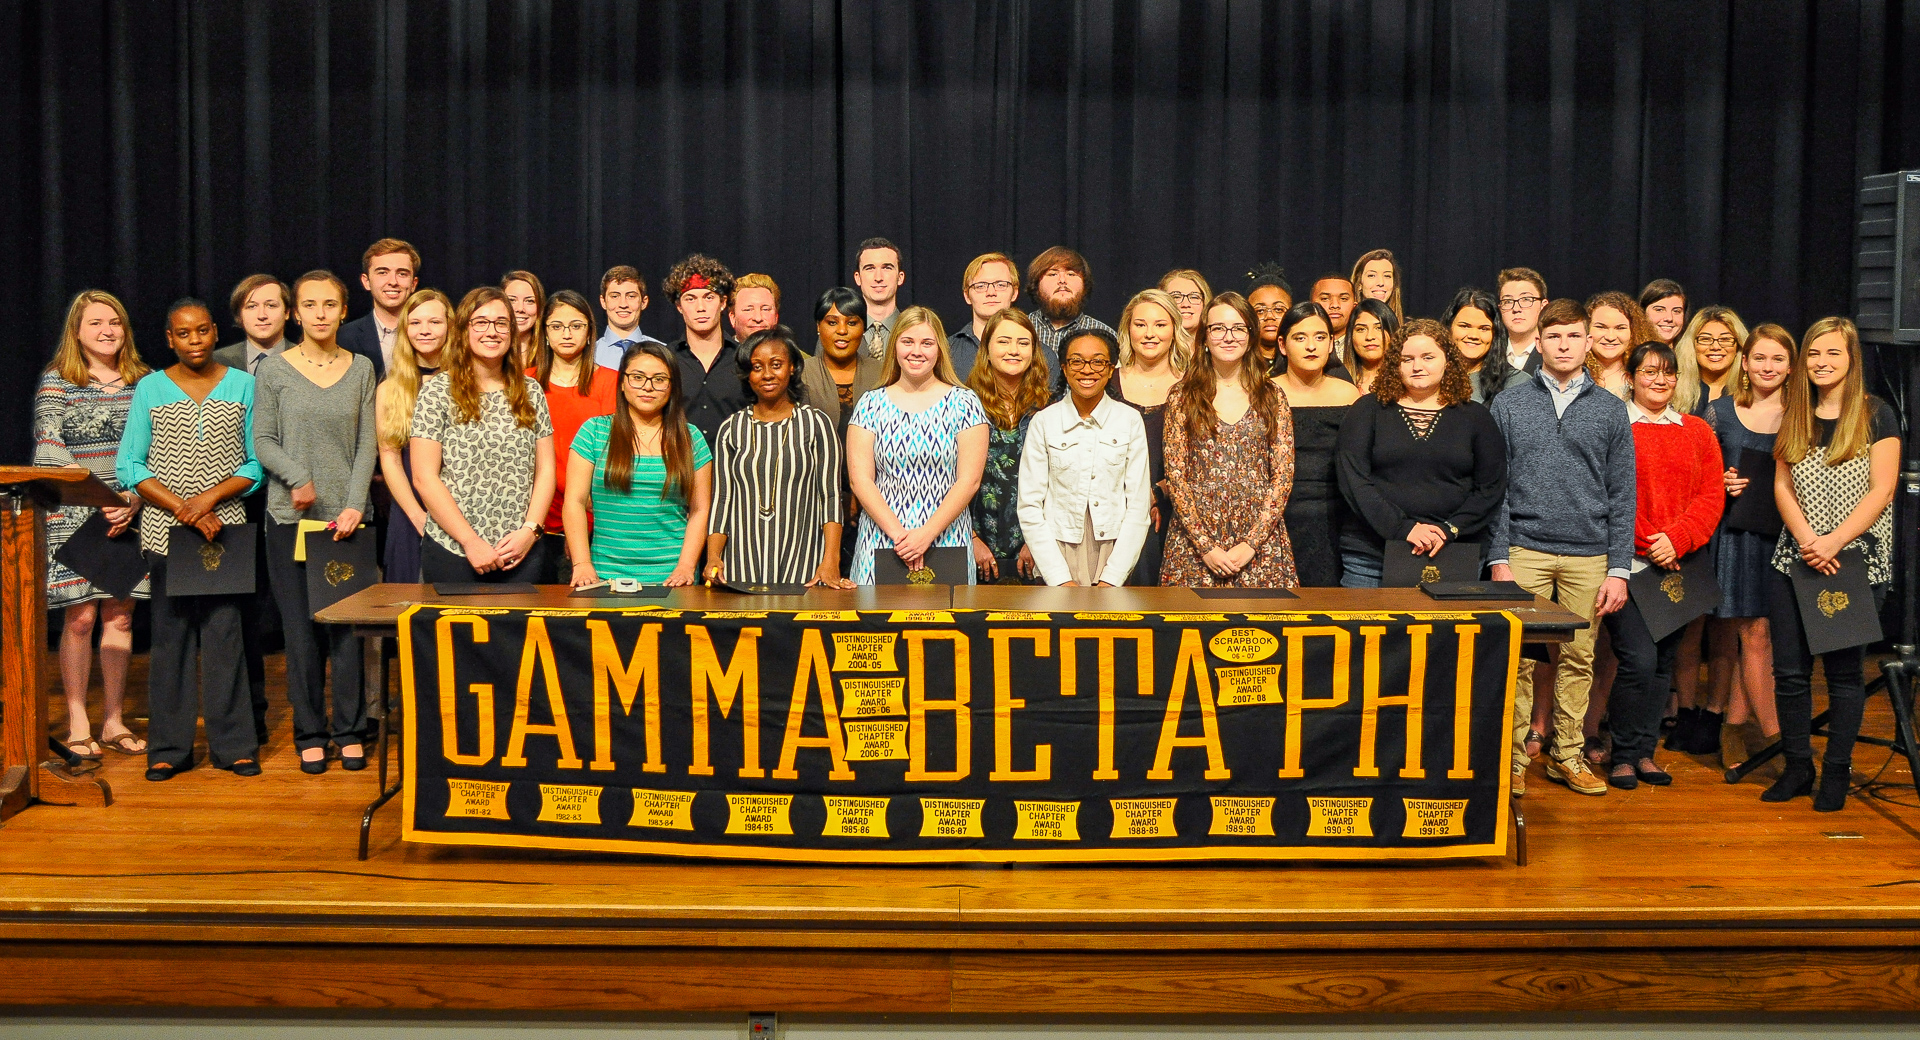 A large group behind a banner reading Gamma Beta Phi.